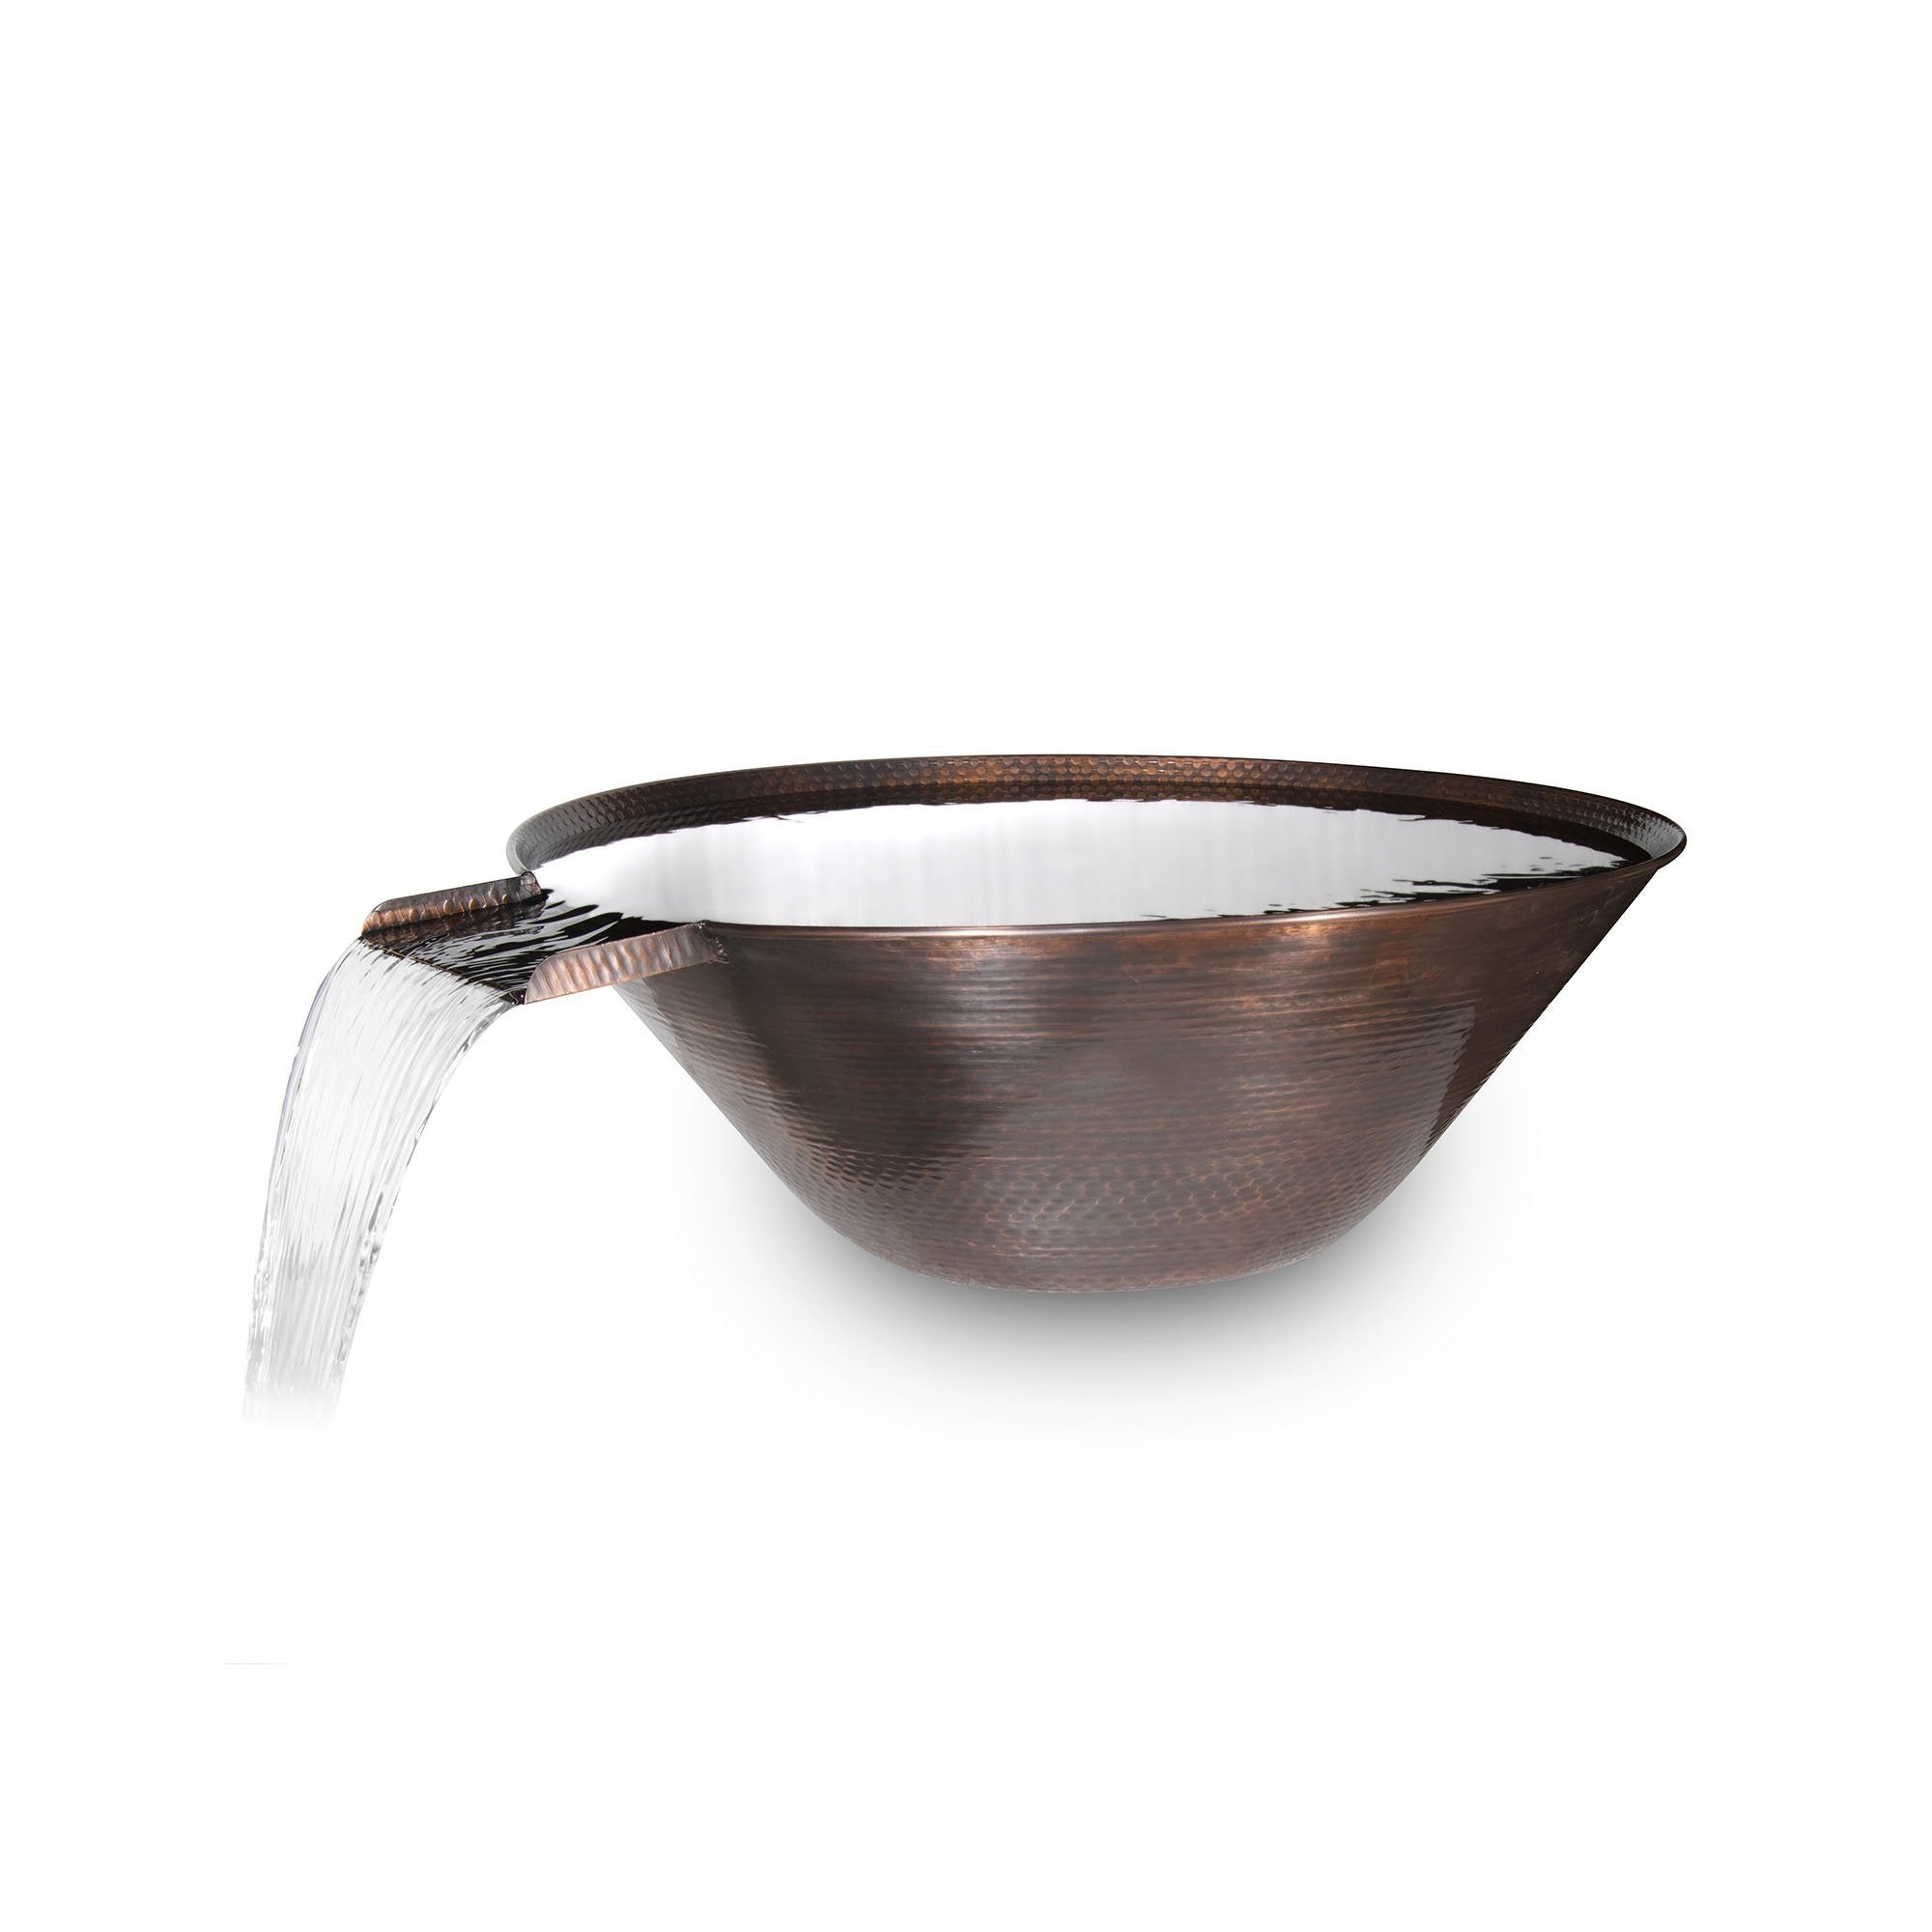 "TOP Fires by The Outdoor Plus Remi Hammered Patina Copper Water Bowl 31"" - Fire Pit Oasis"